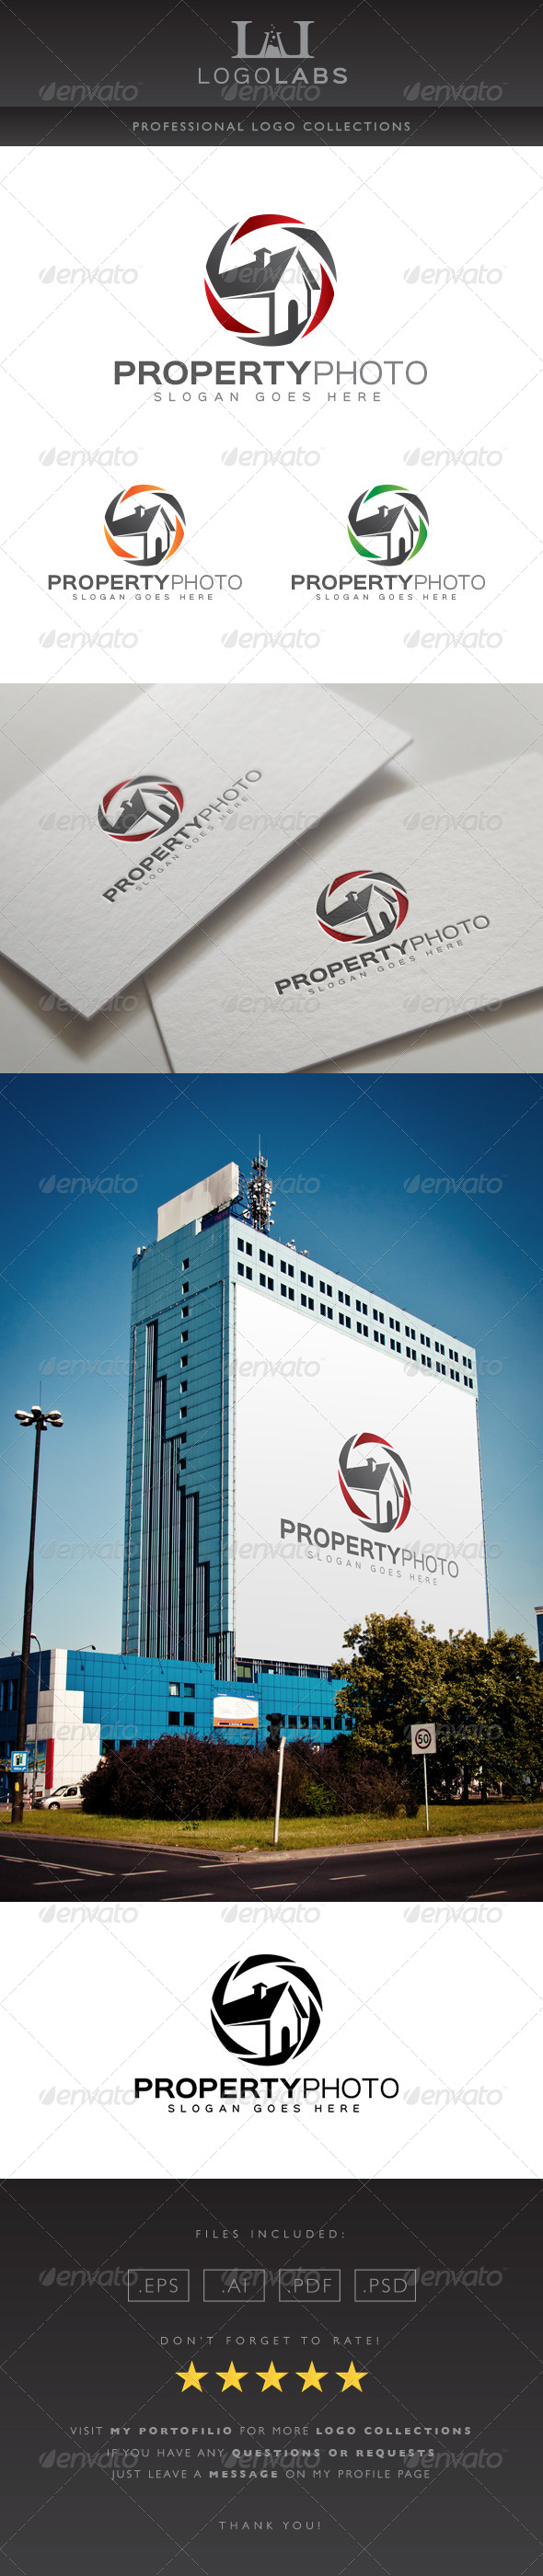 GraphicRiver Property Photo 8615924